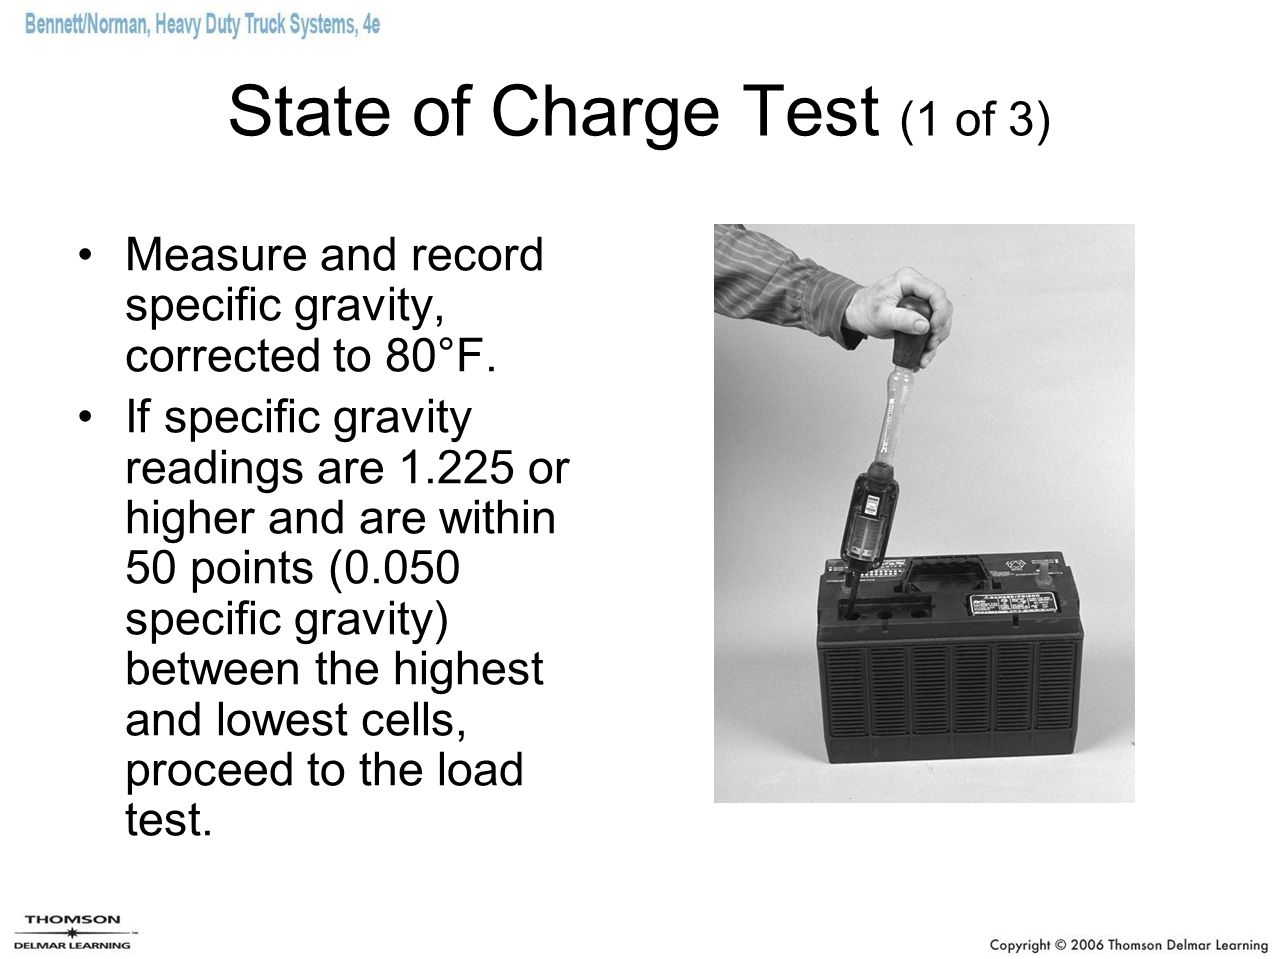 State of Charge Test (1 of 3)